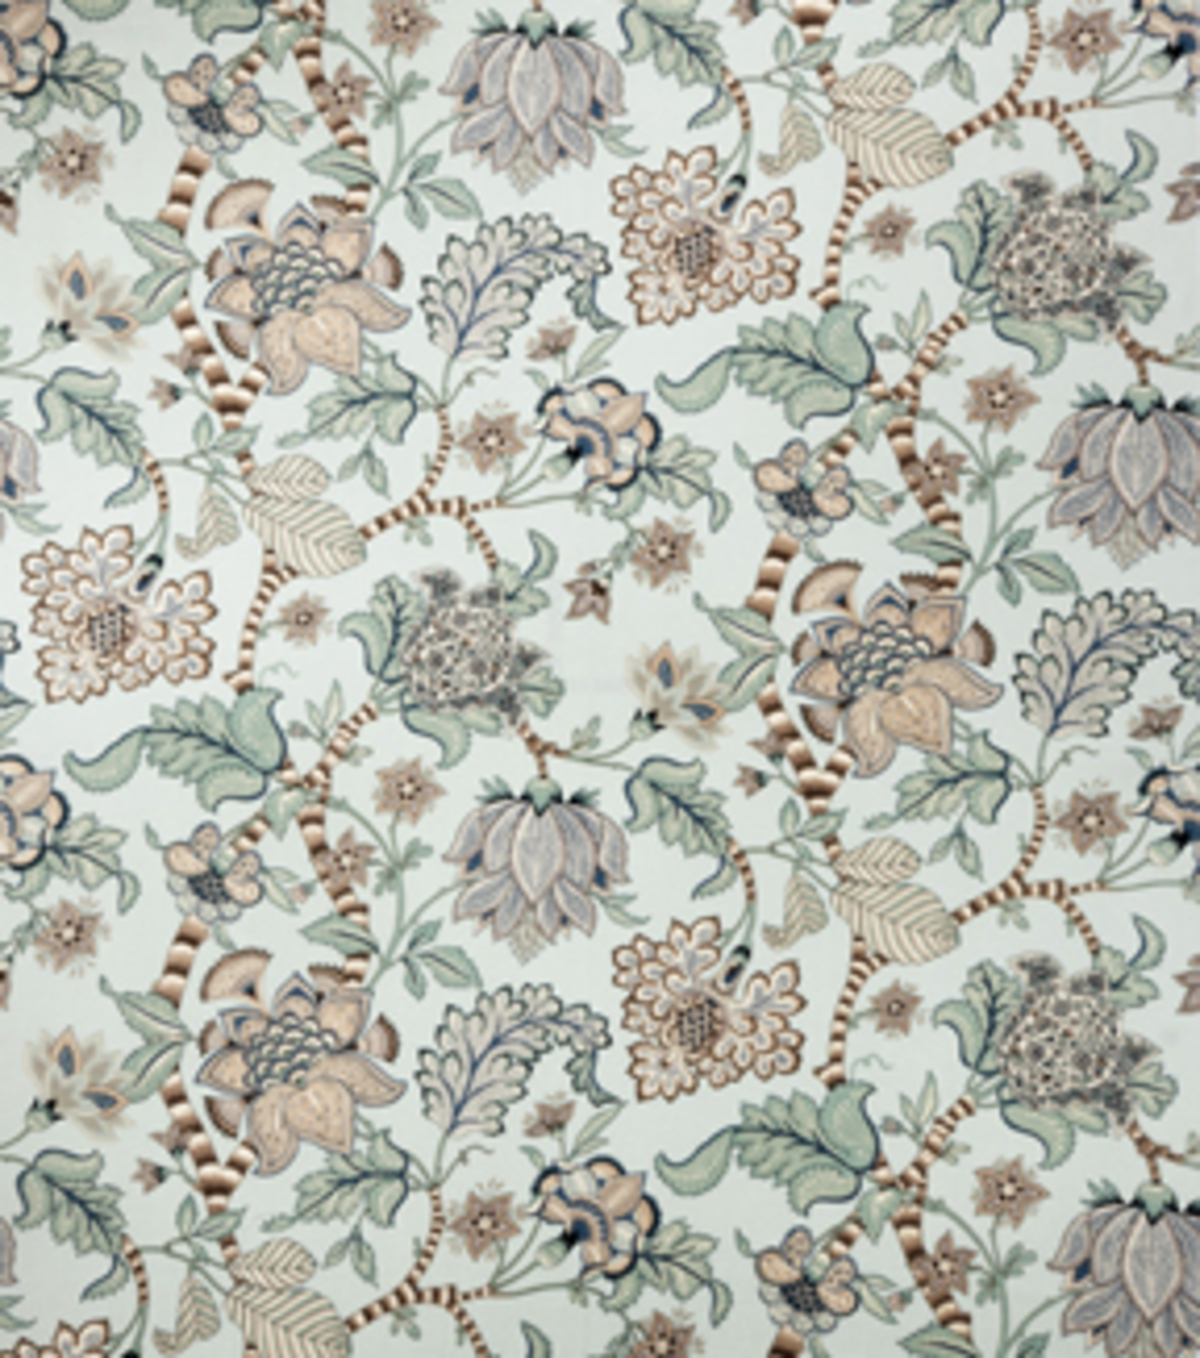 Home Decor 8\u0022x8\u0022 Fabric Swatch-Eaton Square Parula Lagoon